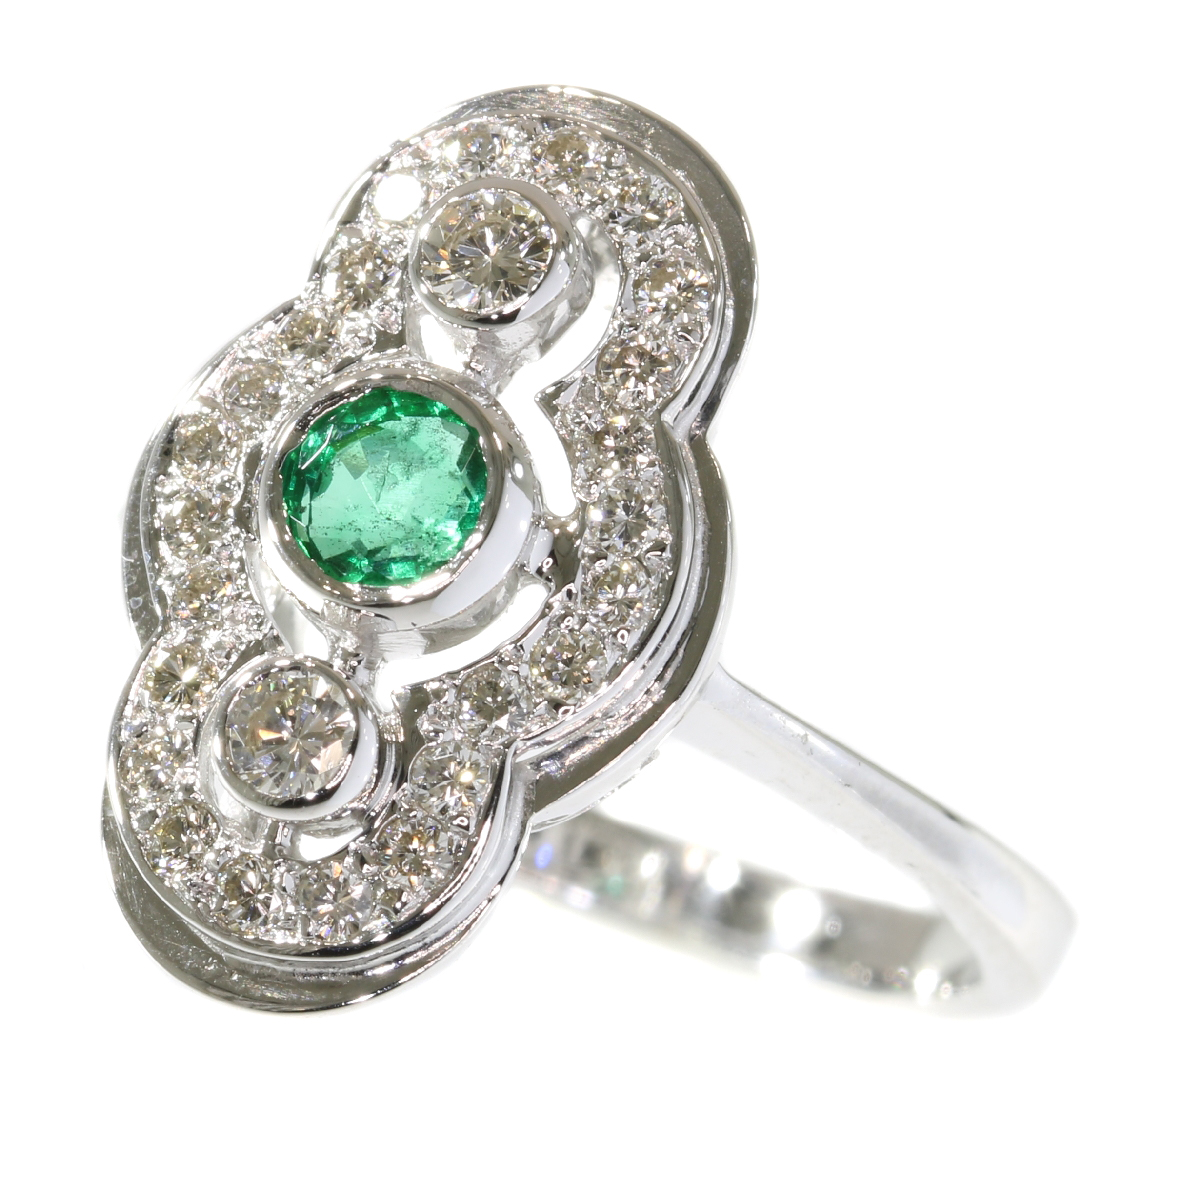 Vintage Art Deco style diamond and emerald ring made in the Seventies